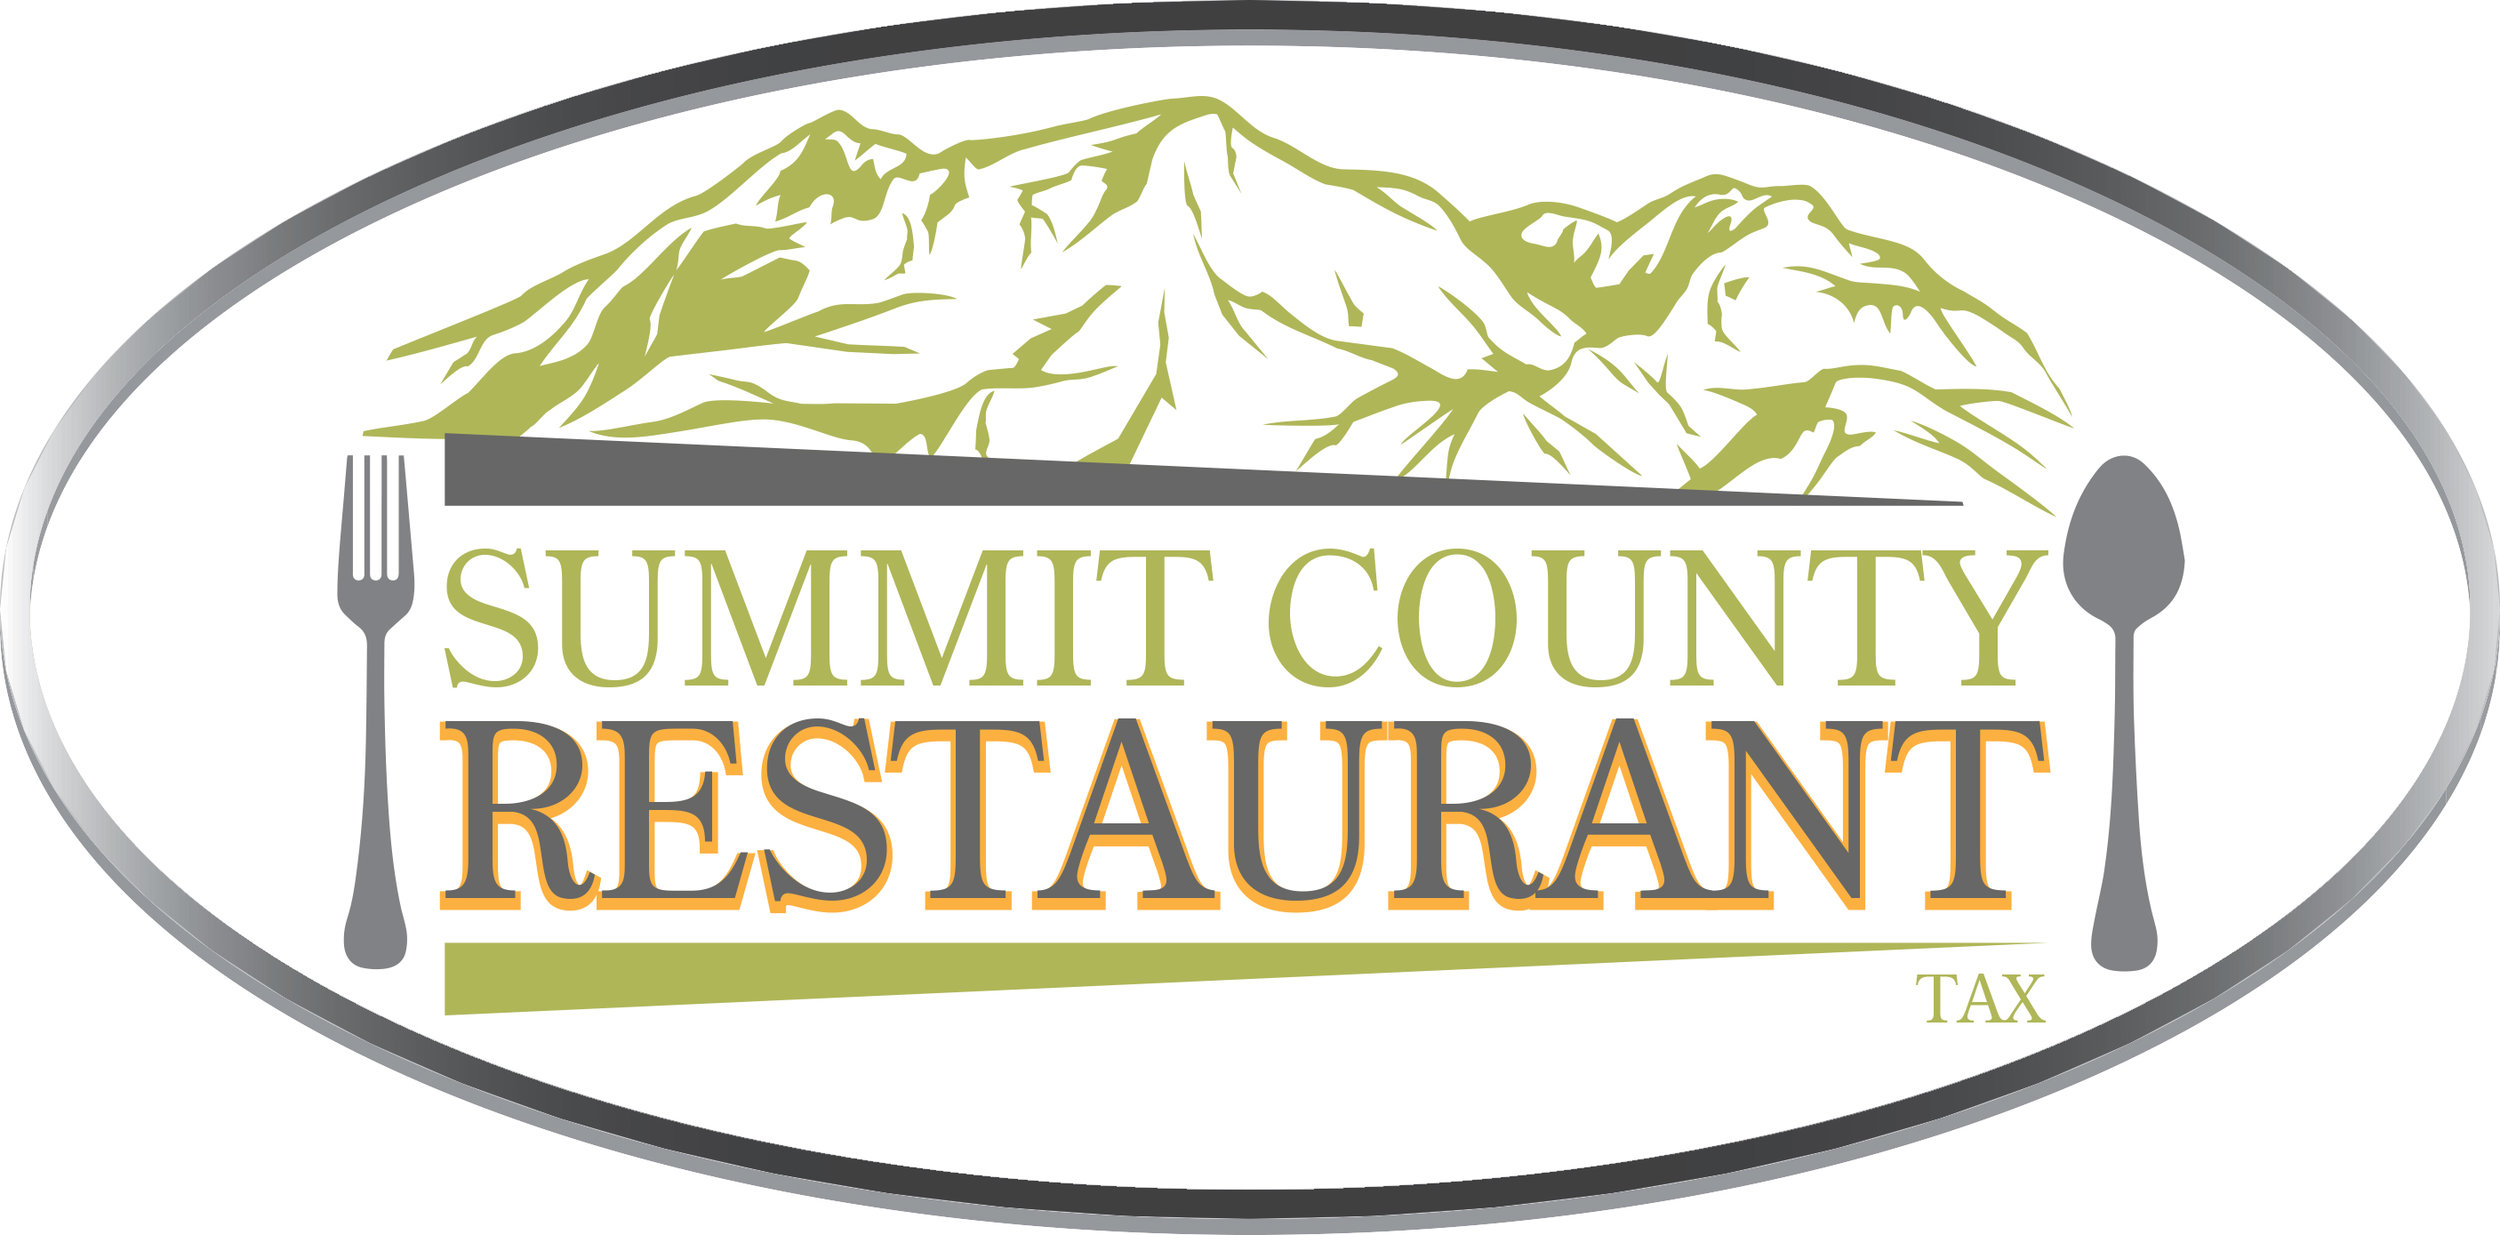 Summit County Restaurant Tax